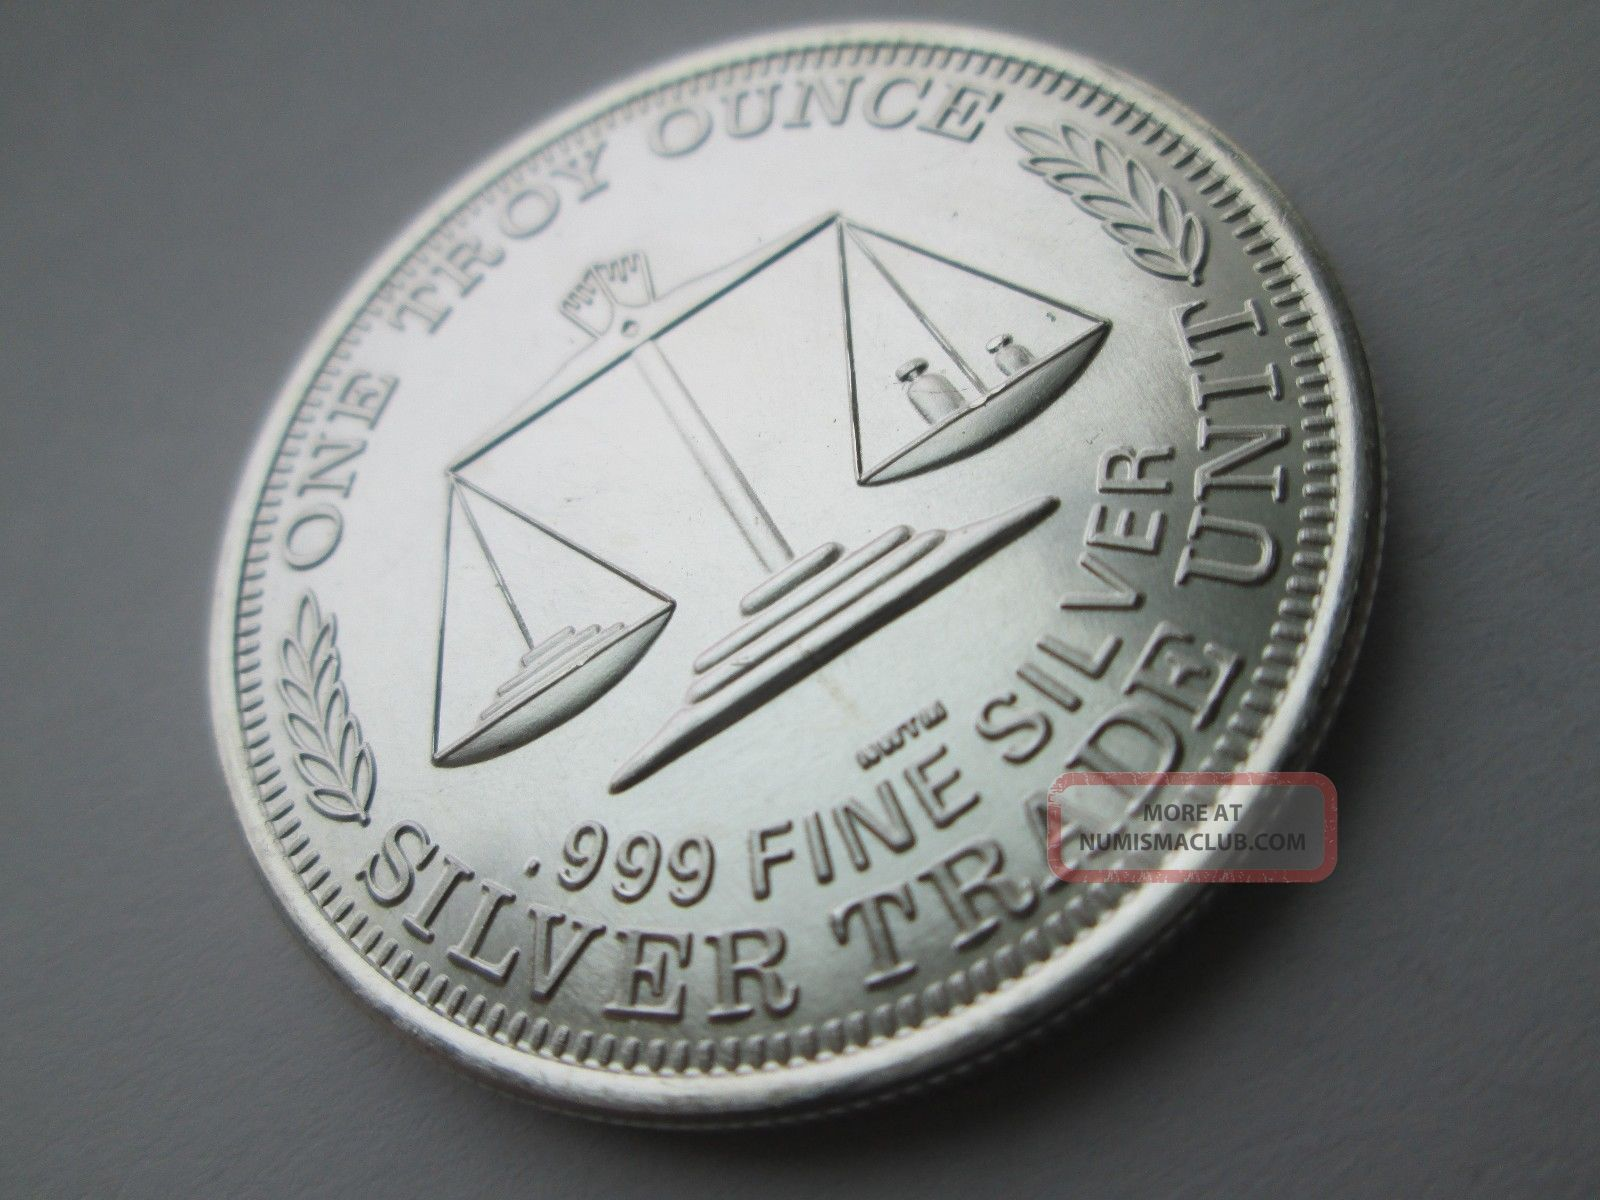 1 Troy Ounce Northwest Territory 999 Fine Silver Round